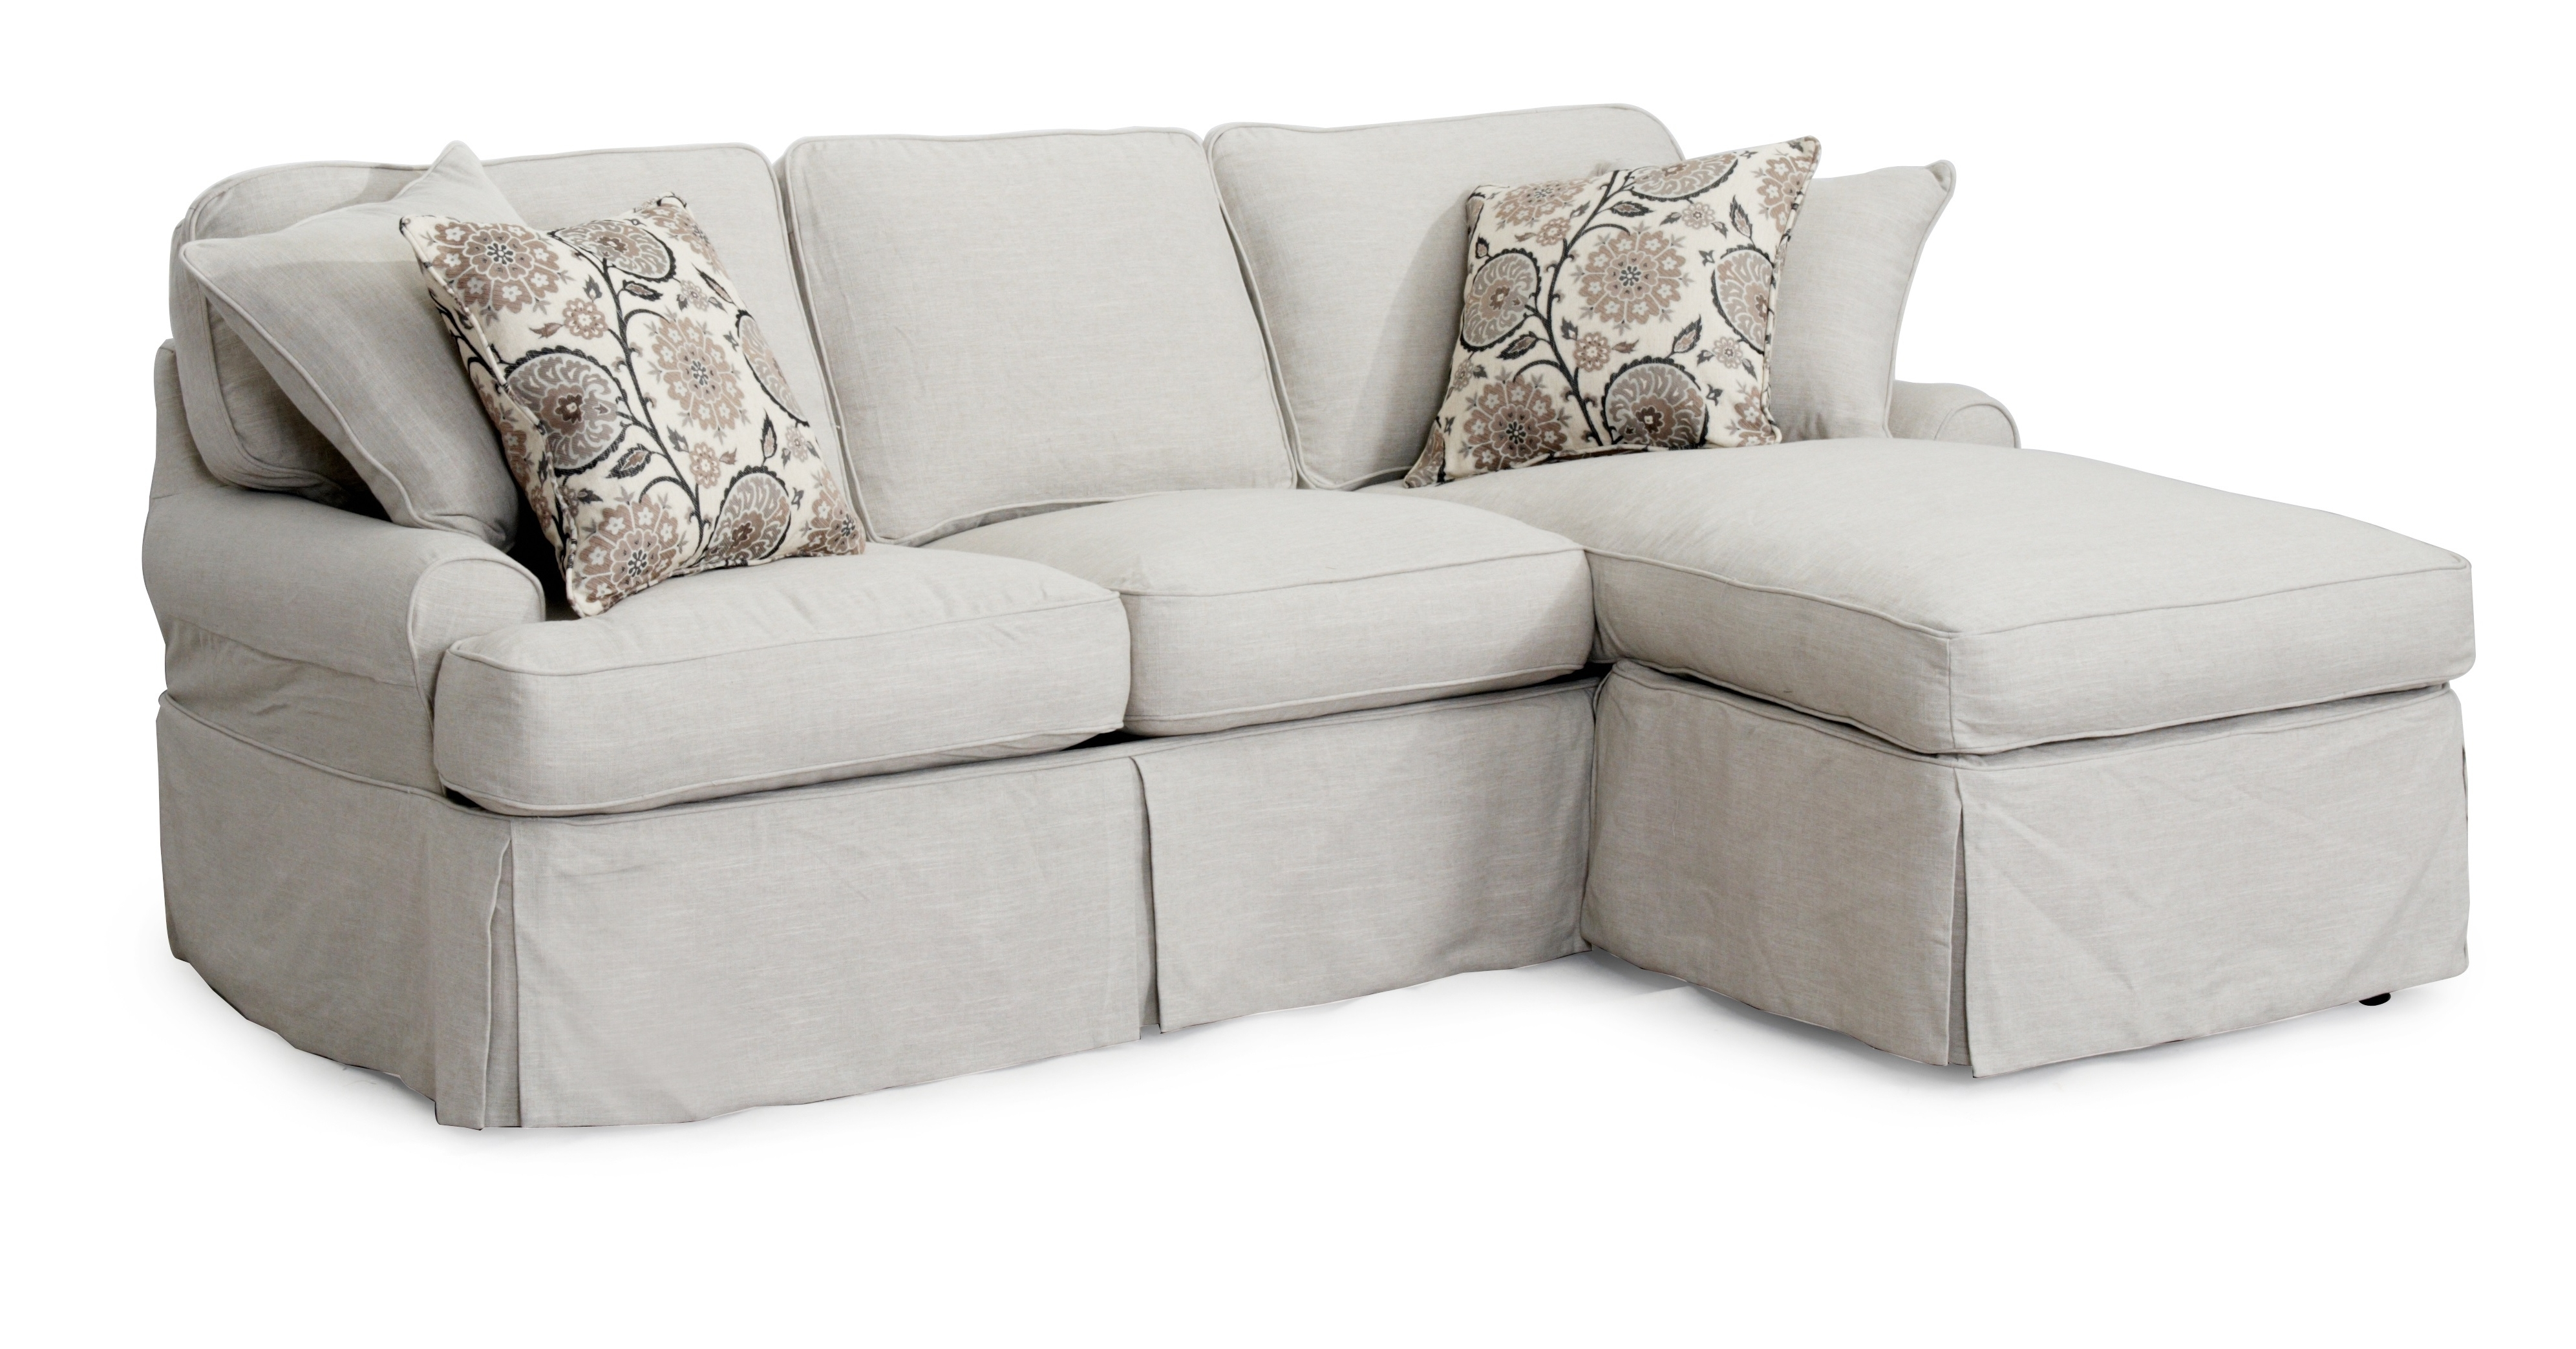 Grey Sofa Chaises Throughout 2018 Decorating Interesting Walmart Slipcovers For Living Room Grey (View 6 of 15)